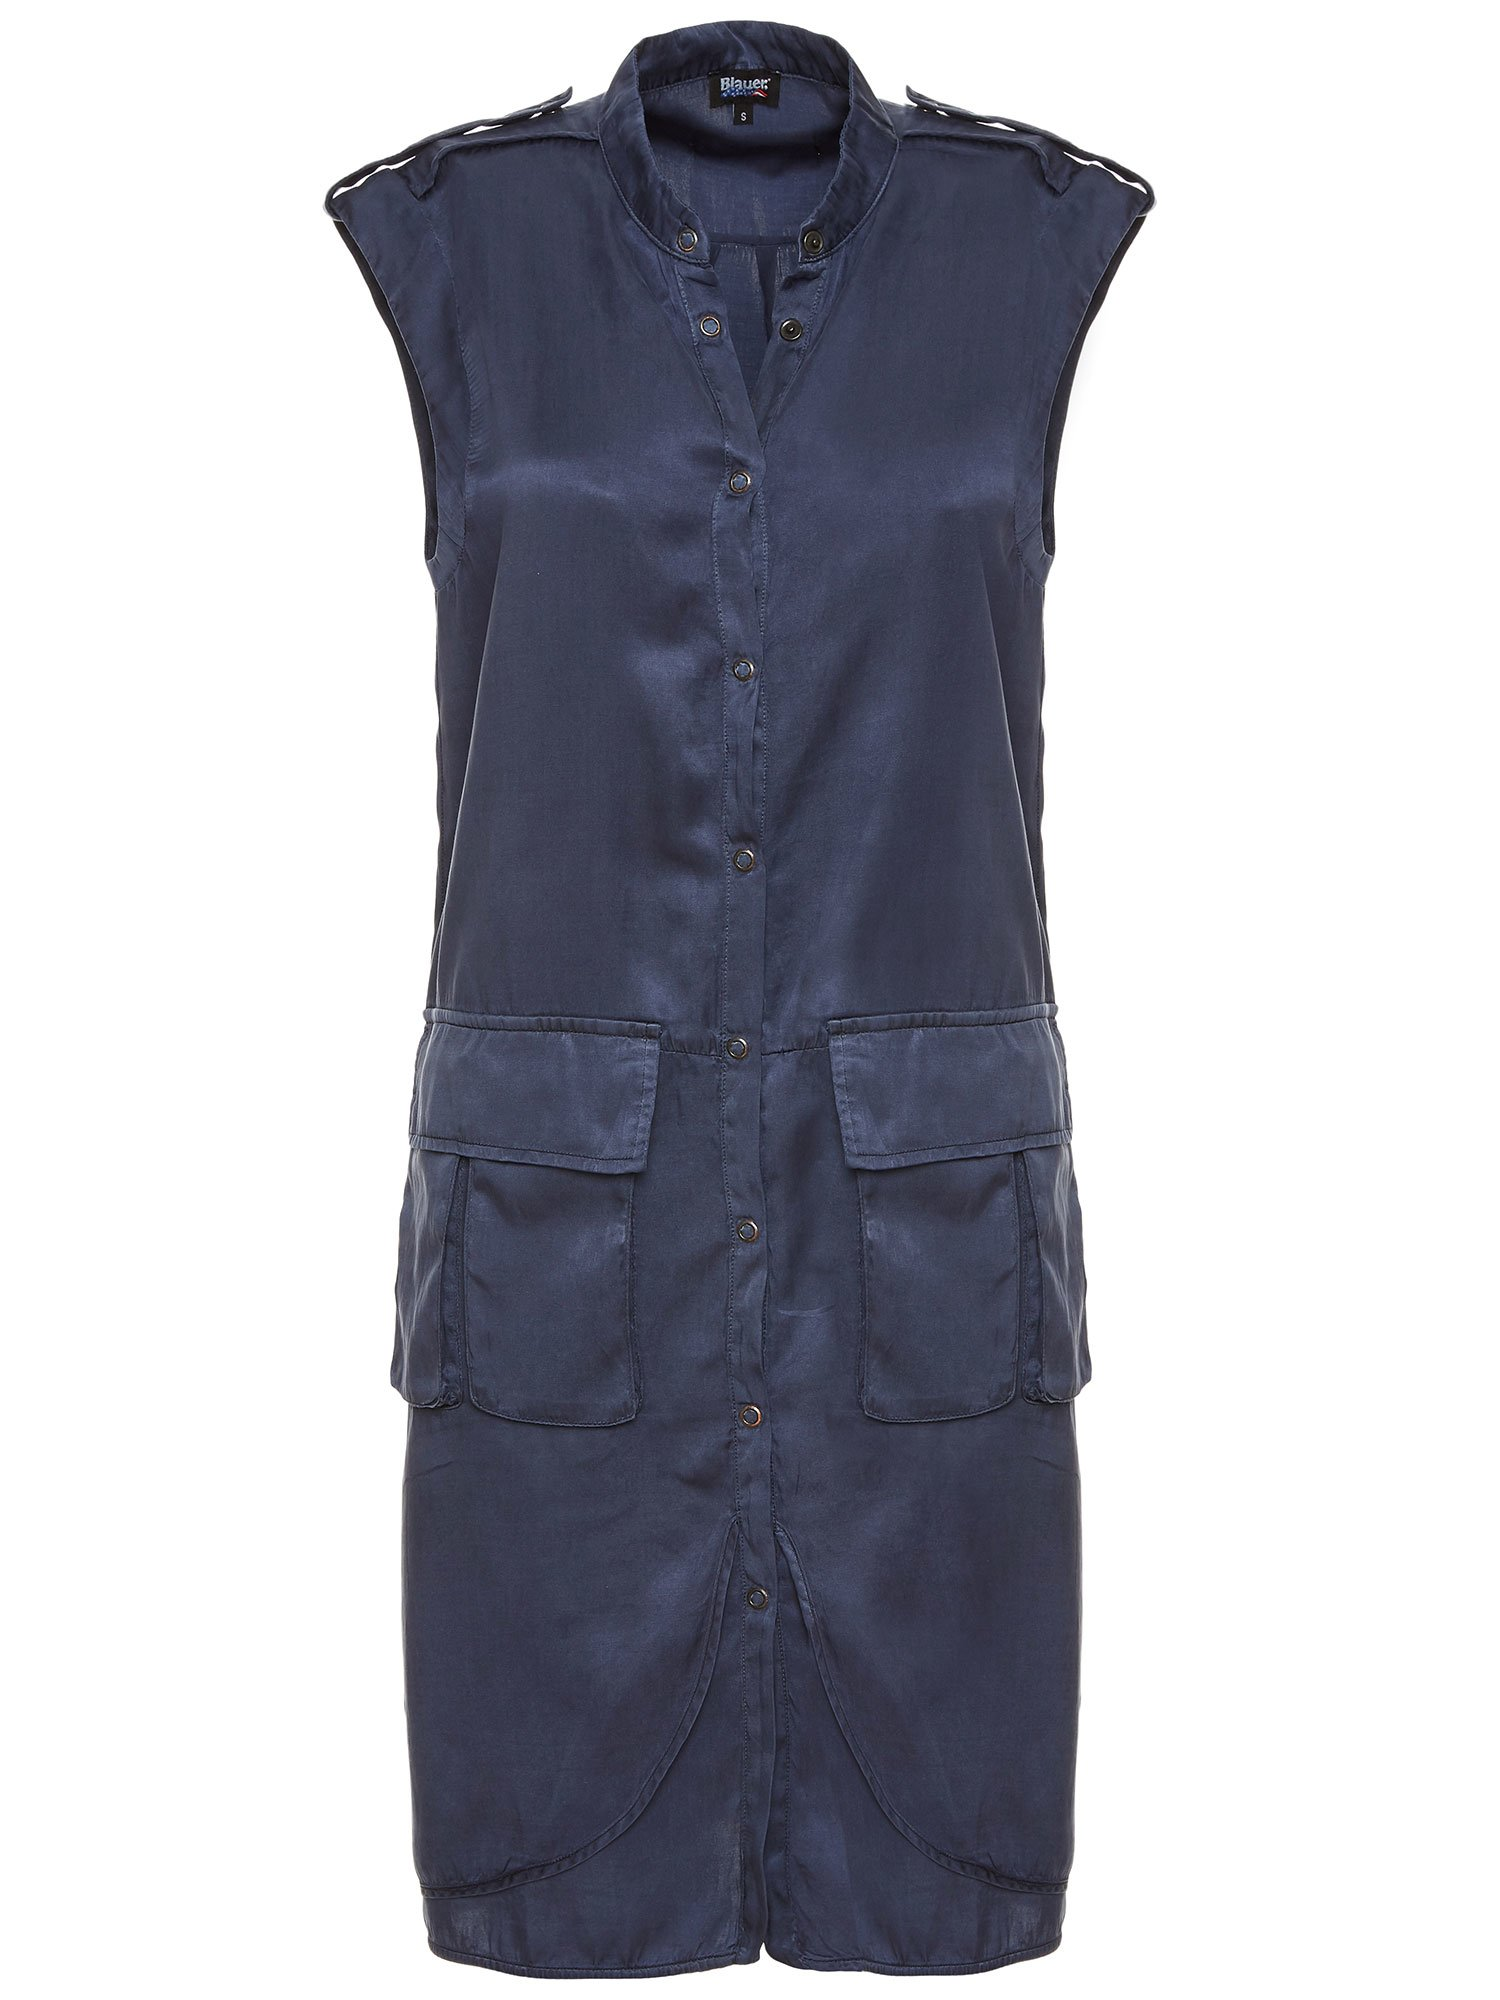 Blauer - SLEEVELESS DRESS WITH LARGE POCKETS - Blue Egeo Sea - Blauer